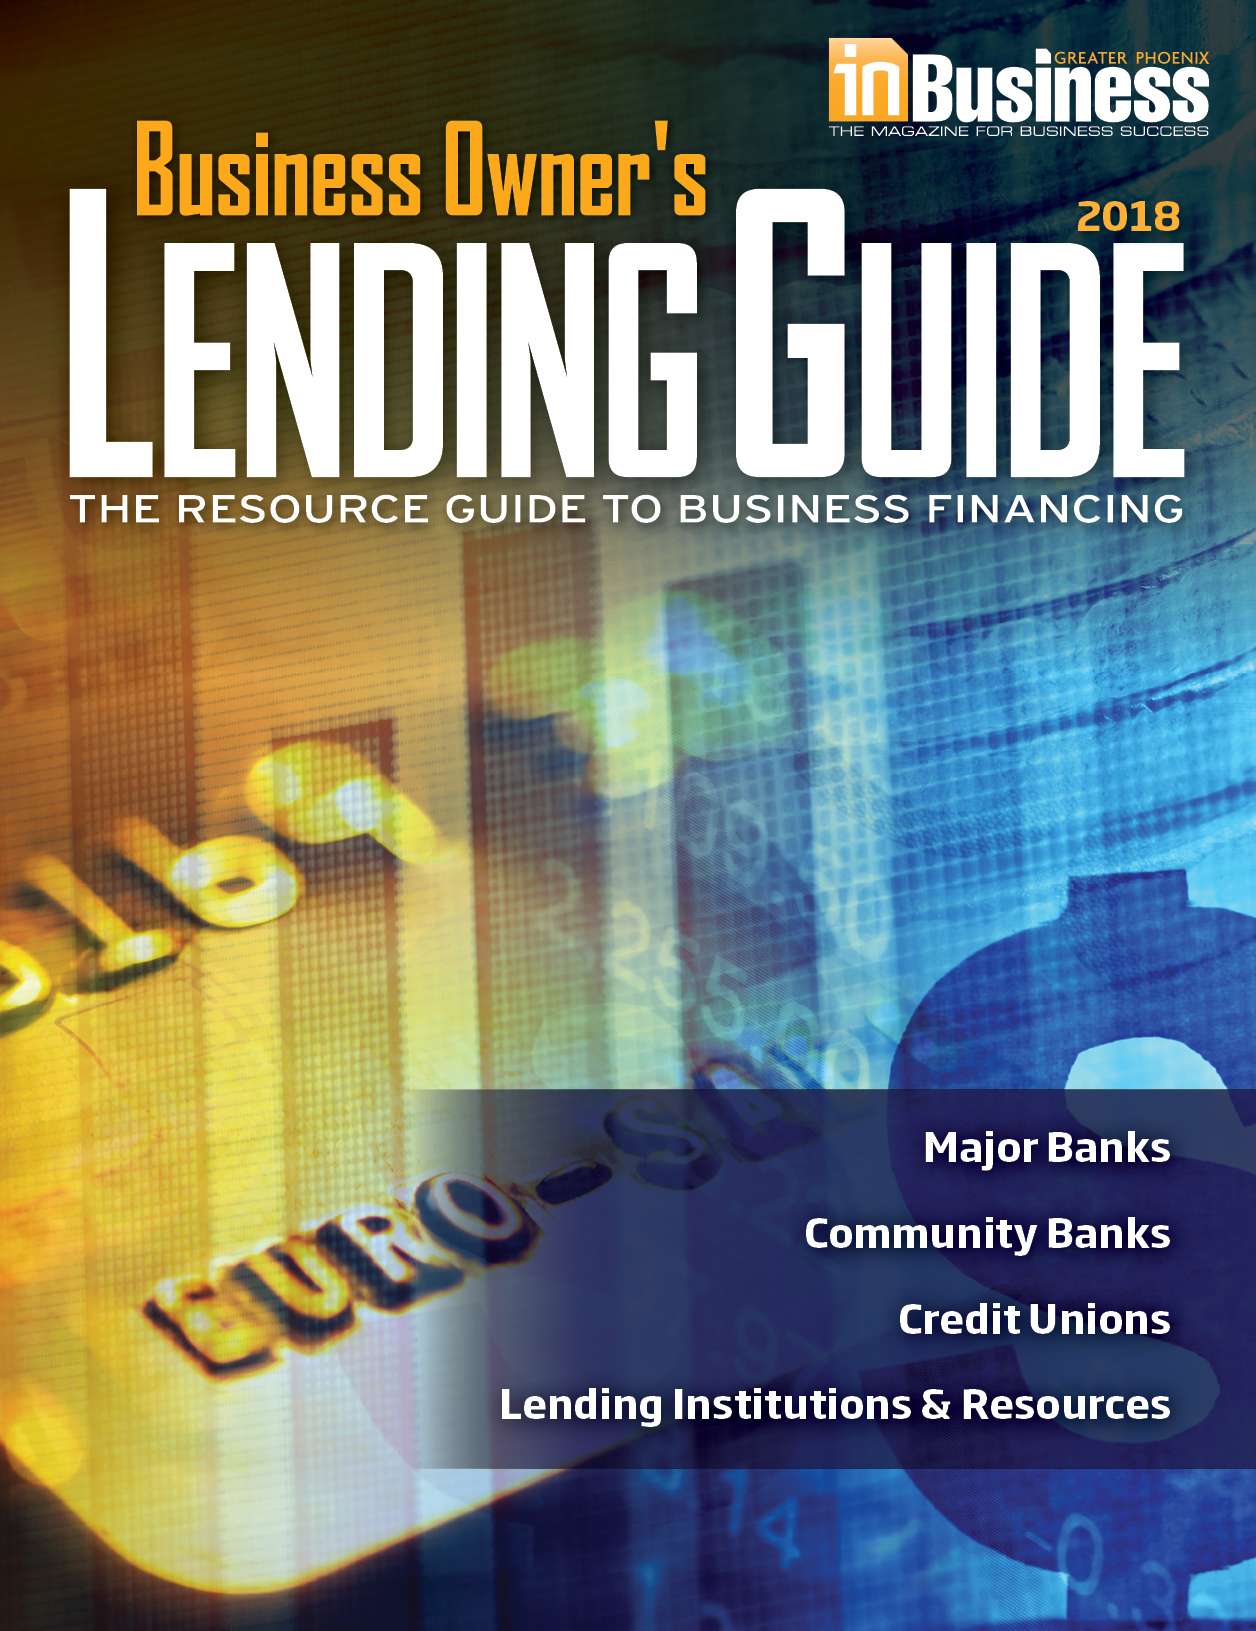 Business Lending Guide4